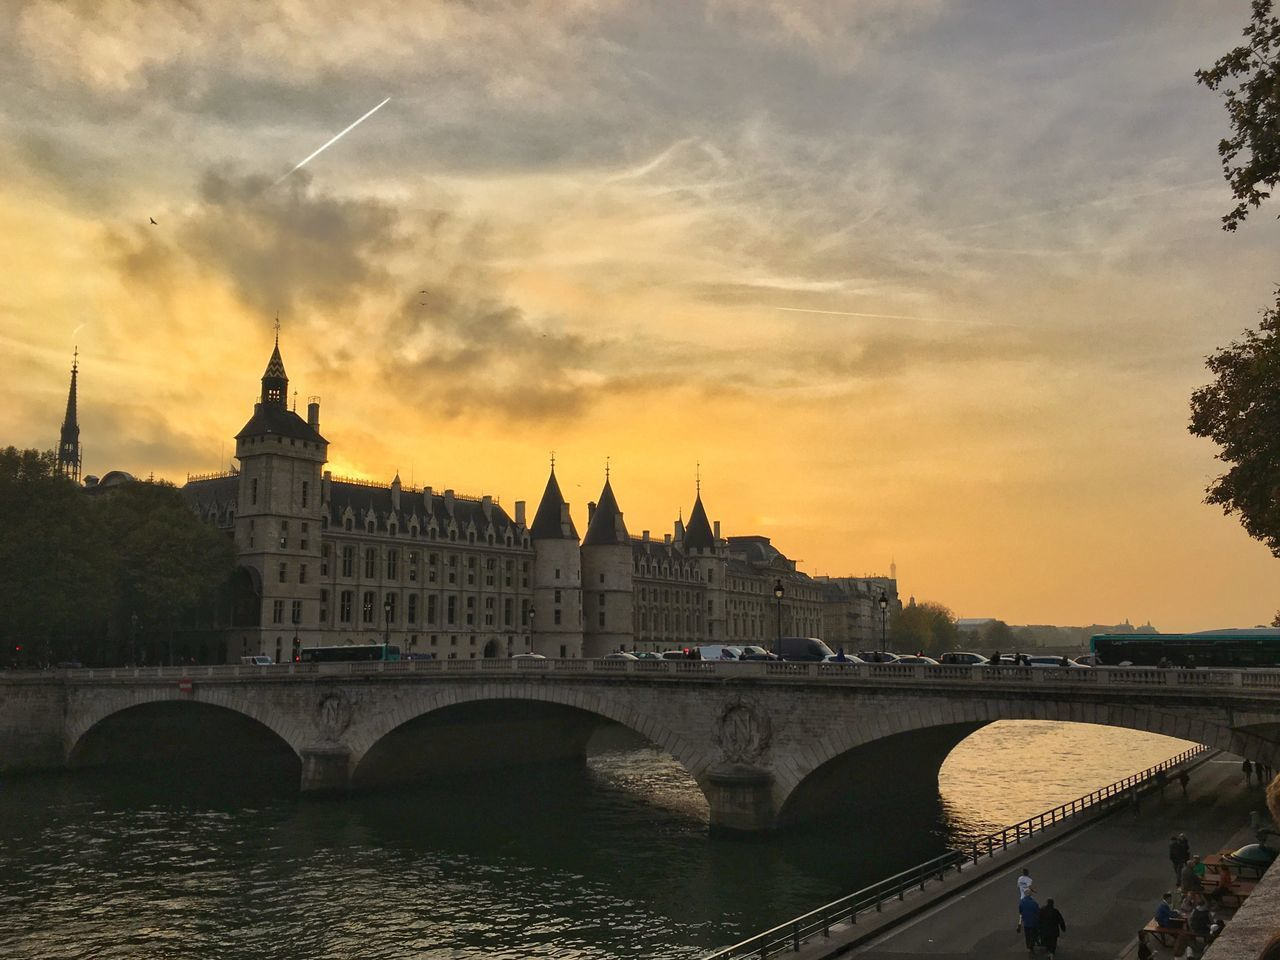 architecture, built structure, bridge - man made structure, river, connection, sky, sunset, travel destinations, building exterior, water, arch, tourism, city, cloud - sky, outdoors, tree, day, no people, nature